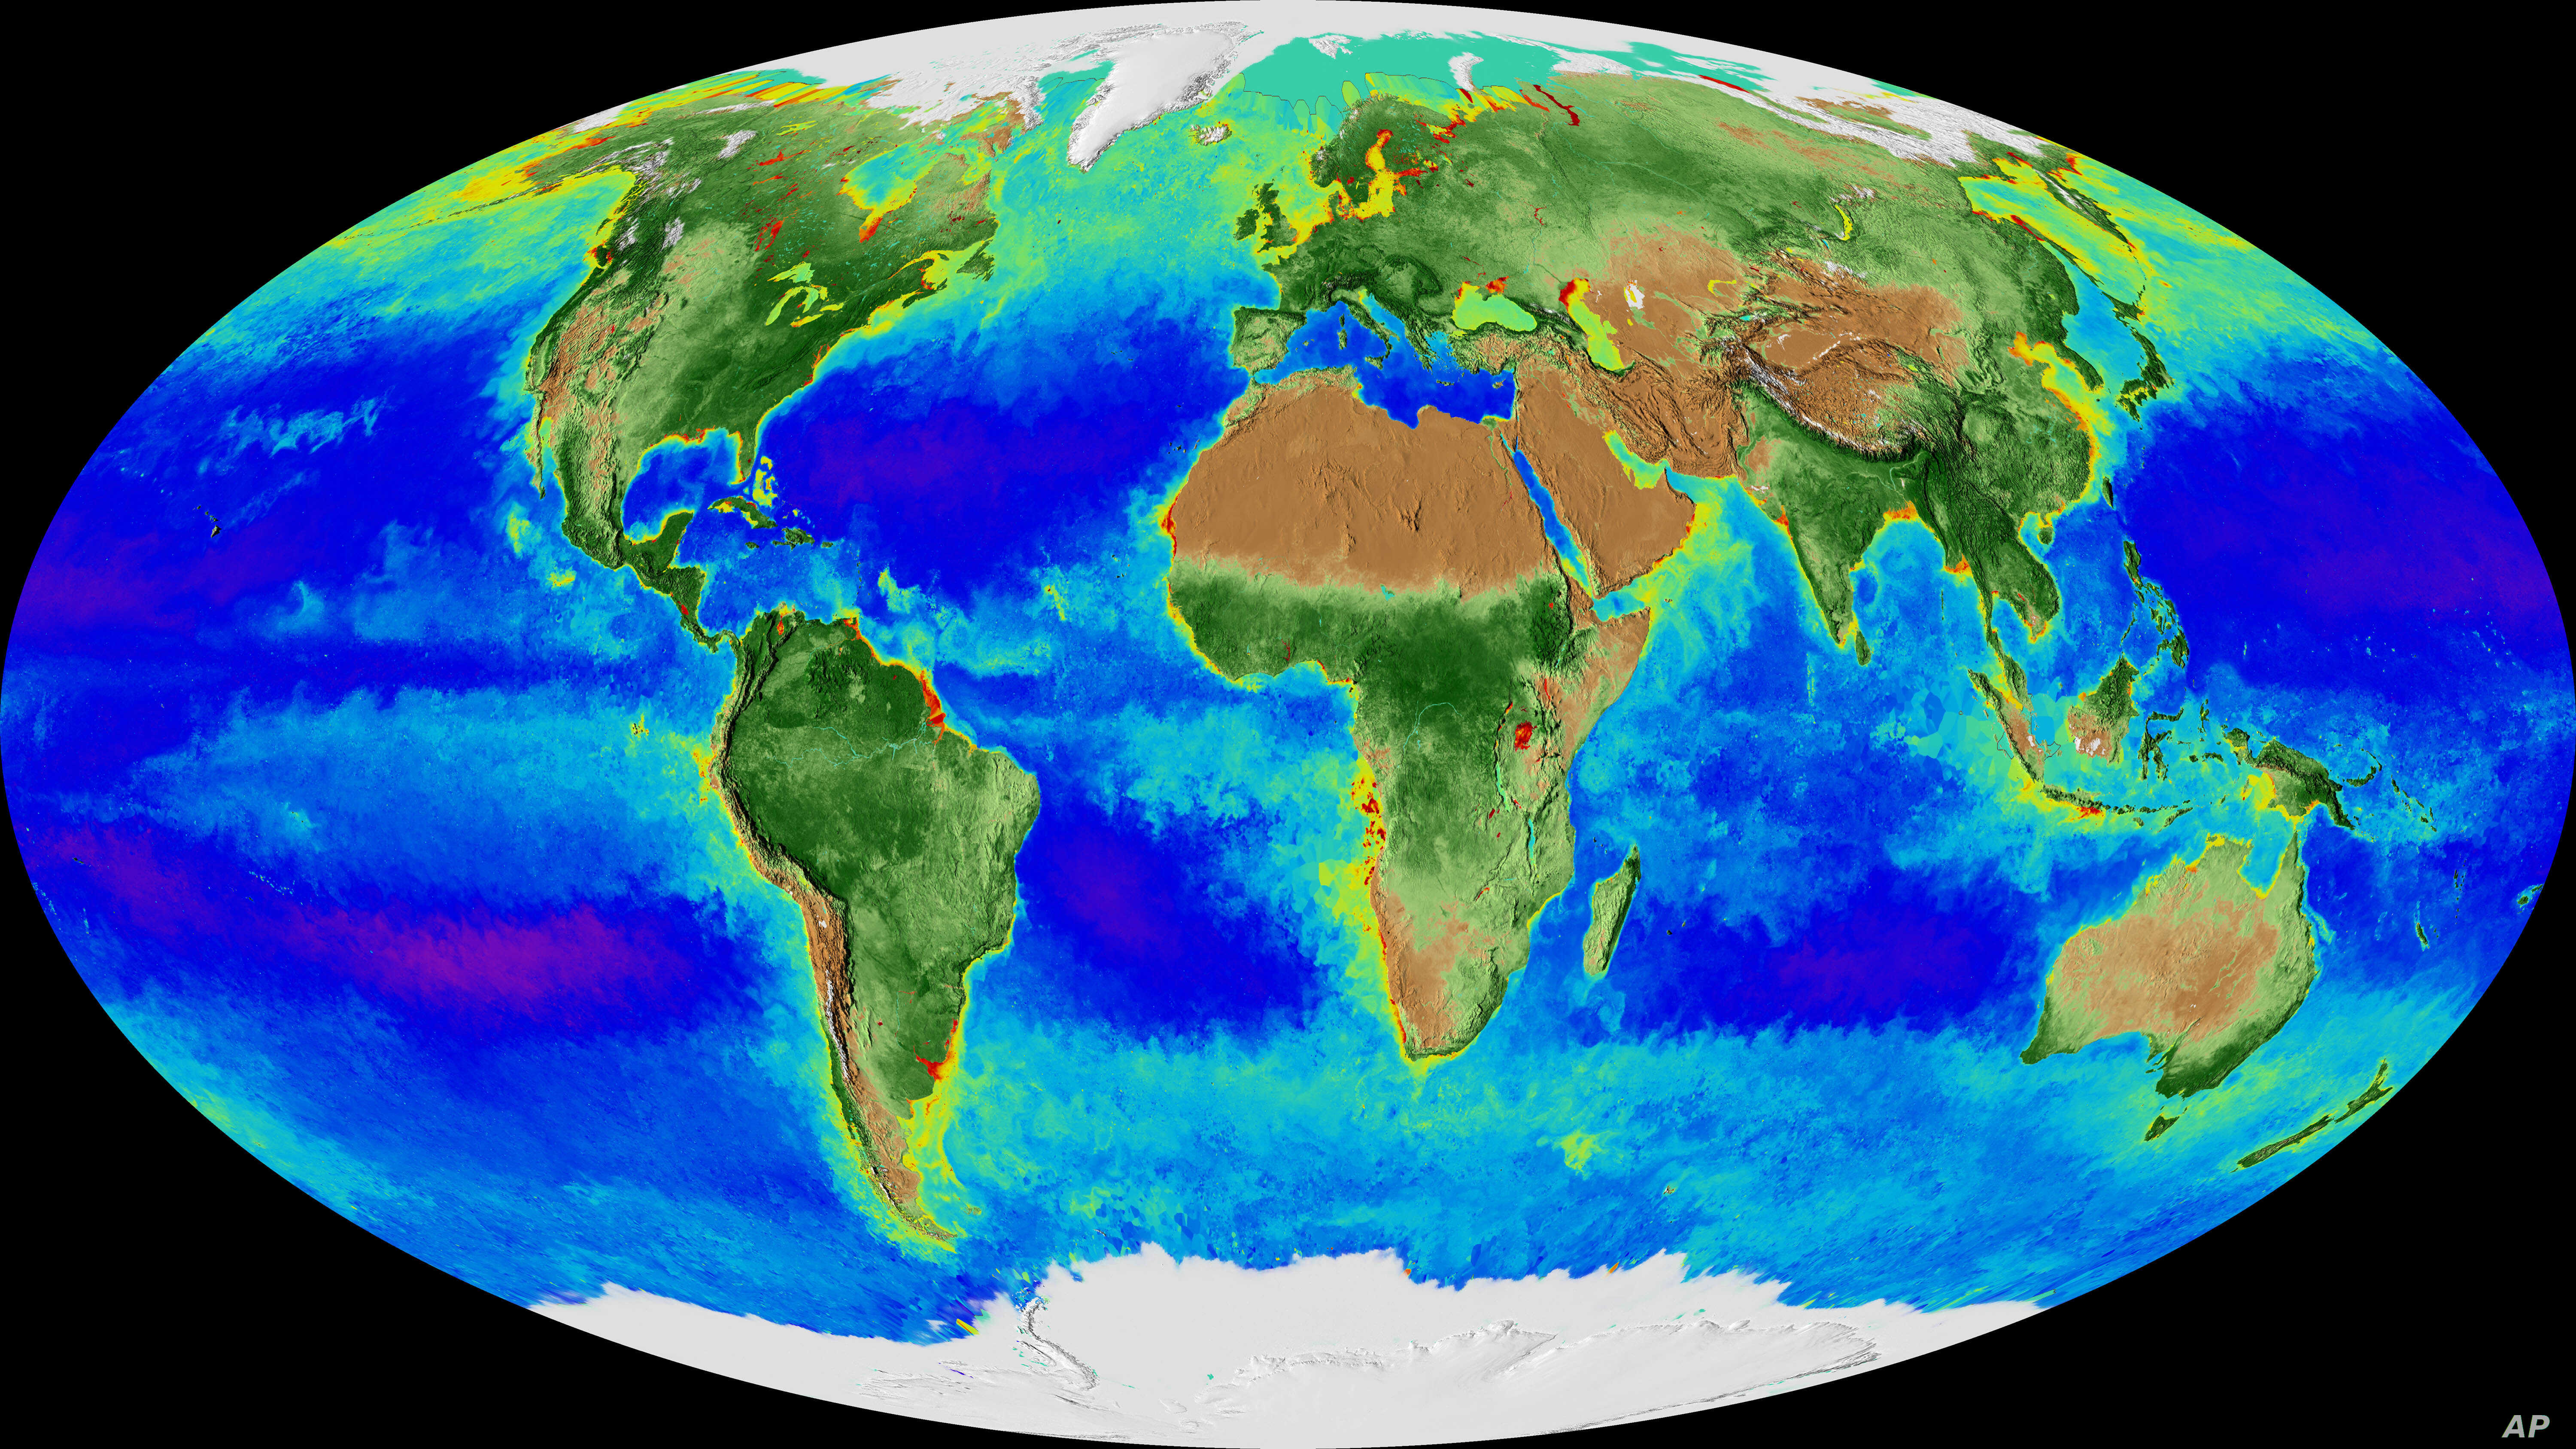 20 Years of Changing Seasons on Earth, Packed Into 2½ ... on global map india, satellite of earth, global satellite maps, aerial photography of earth, blackline of earth, gps of earth, globe of earth, global view of the earth, resources of earth, global climate earth, global maps of north pole, global map view, global map water, united states of earth, global maps live, radar of earth, global map light, global map continents, global hemisphere map, global earth map residential homes,